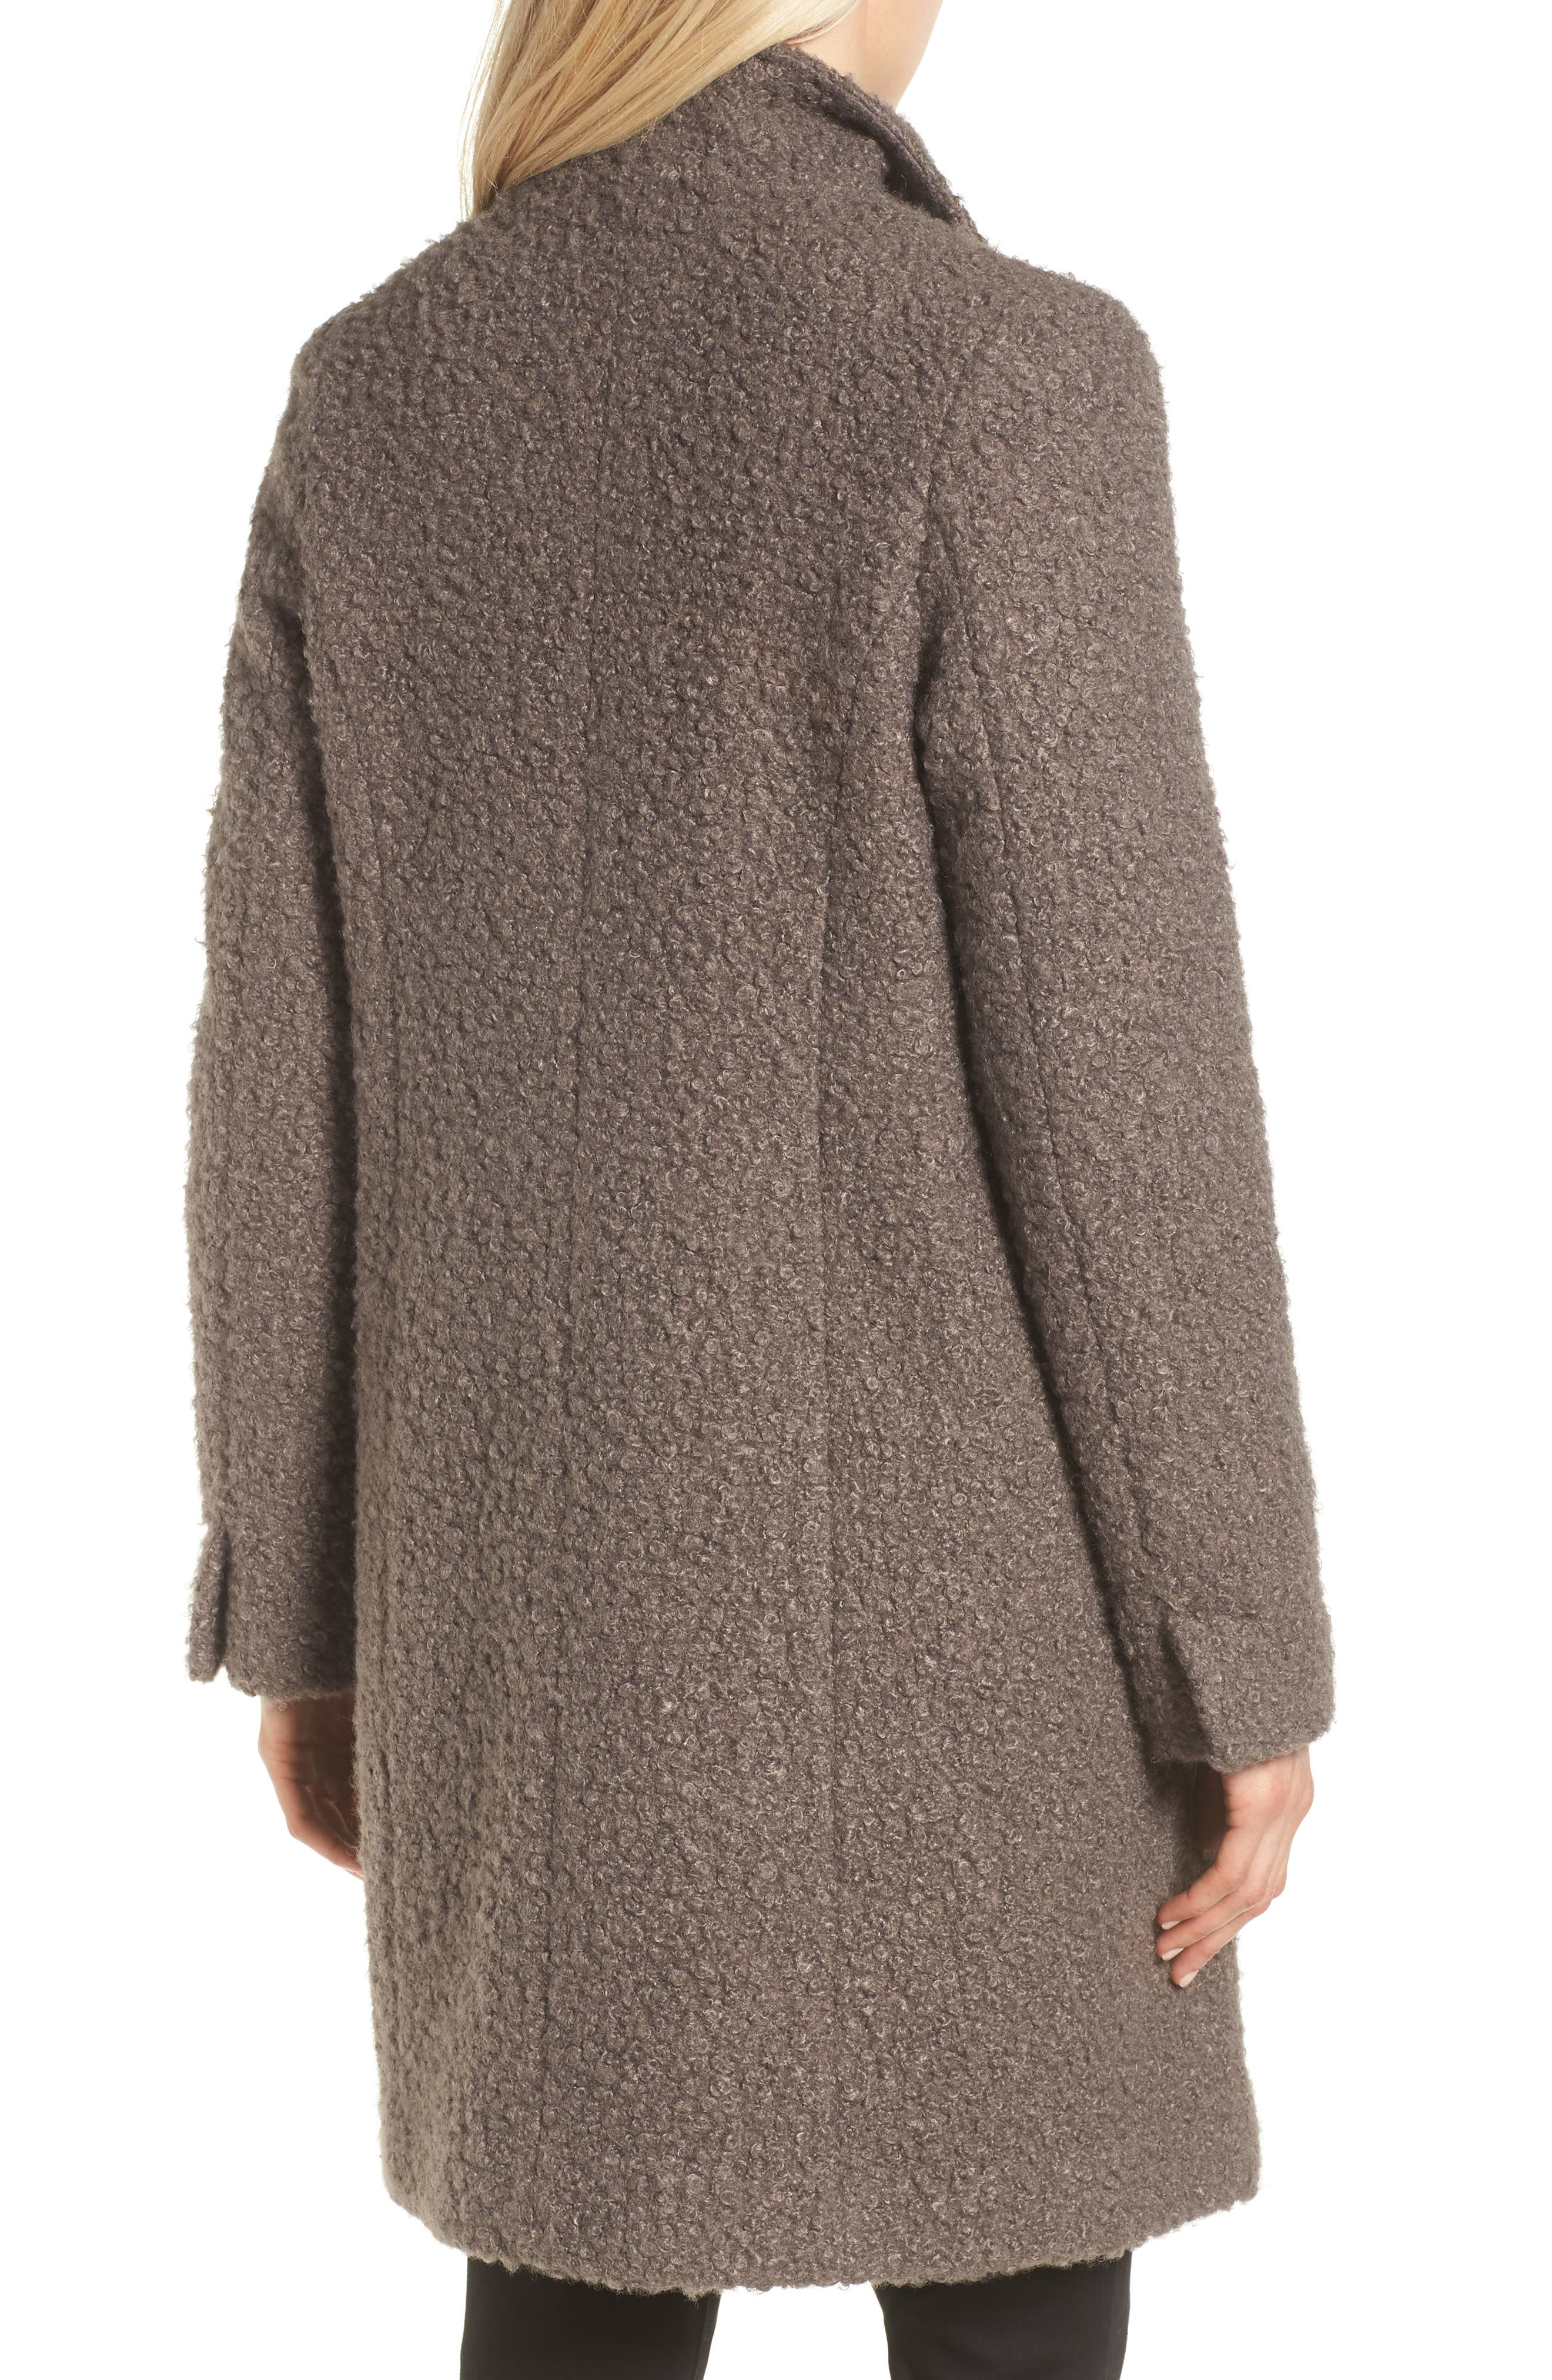 TAHARI,                             Sheila Bouclé Knit Coat,                             Alternate thumbnail 2, color,                             087